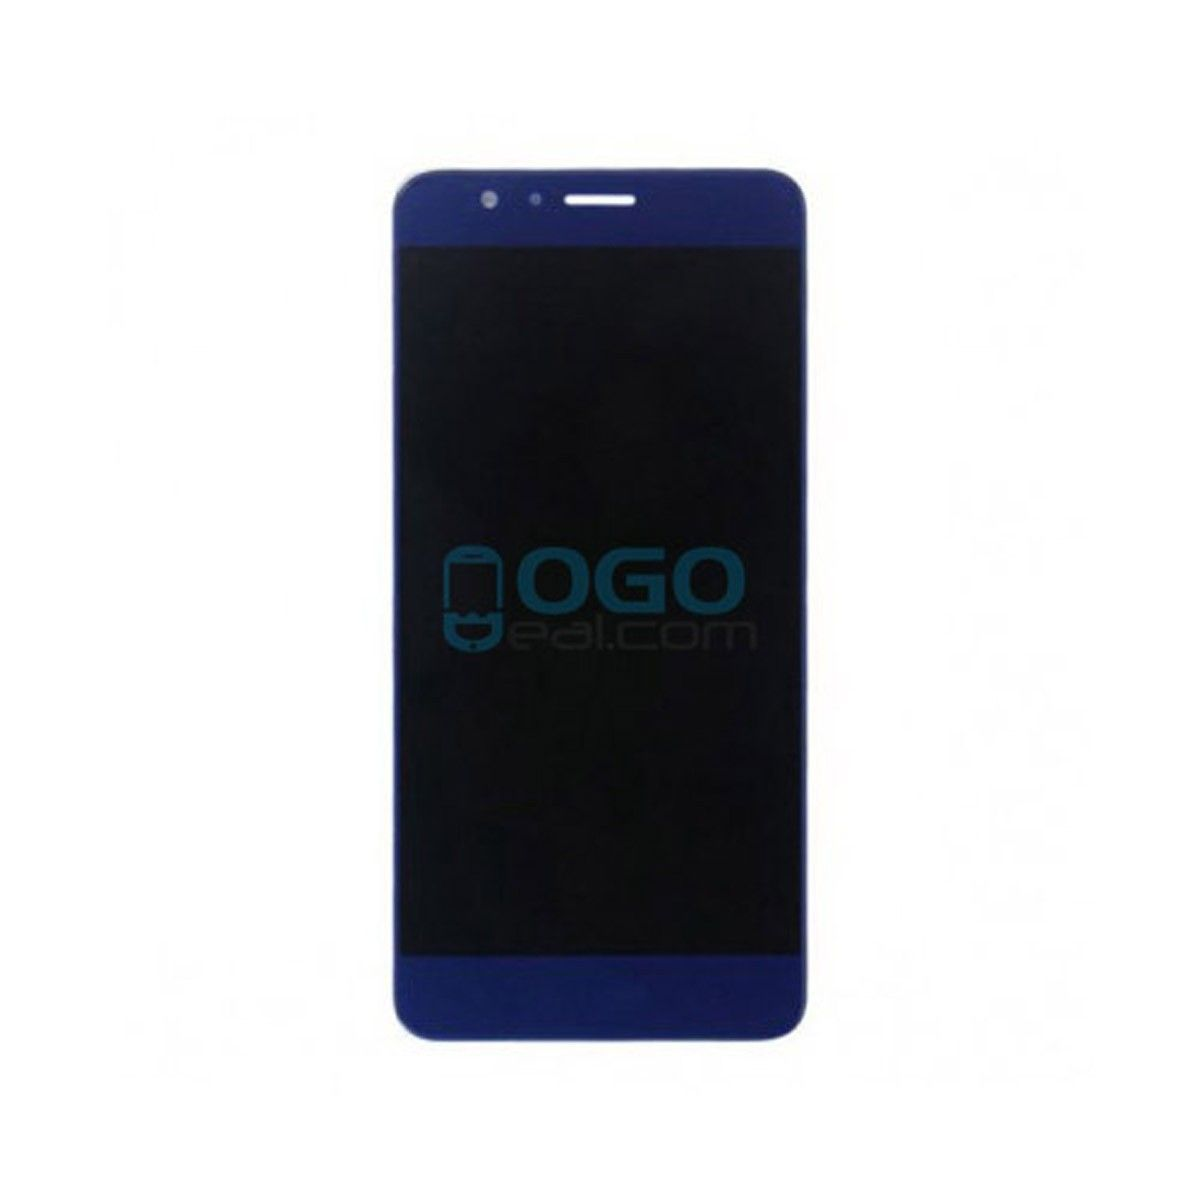 LCD Screen and Digitizer Assembly Replacement for Huawei Honor 8 - Blue @ http://www.ogodeal.com/lcd-screen-and-digitizer-assembly-replacement-for-huawei-honor-8-blue.html